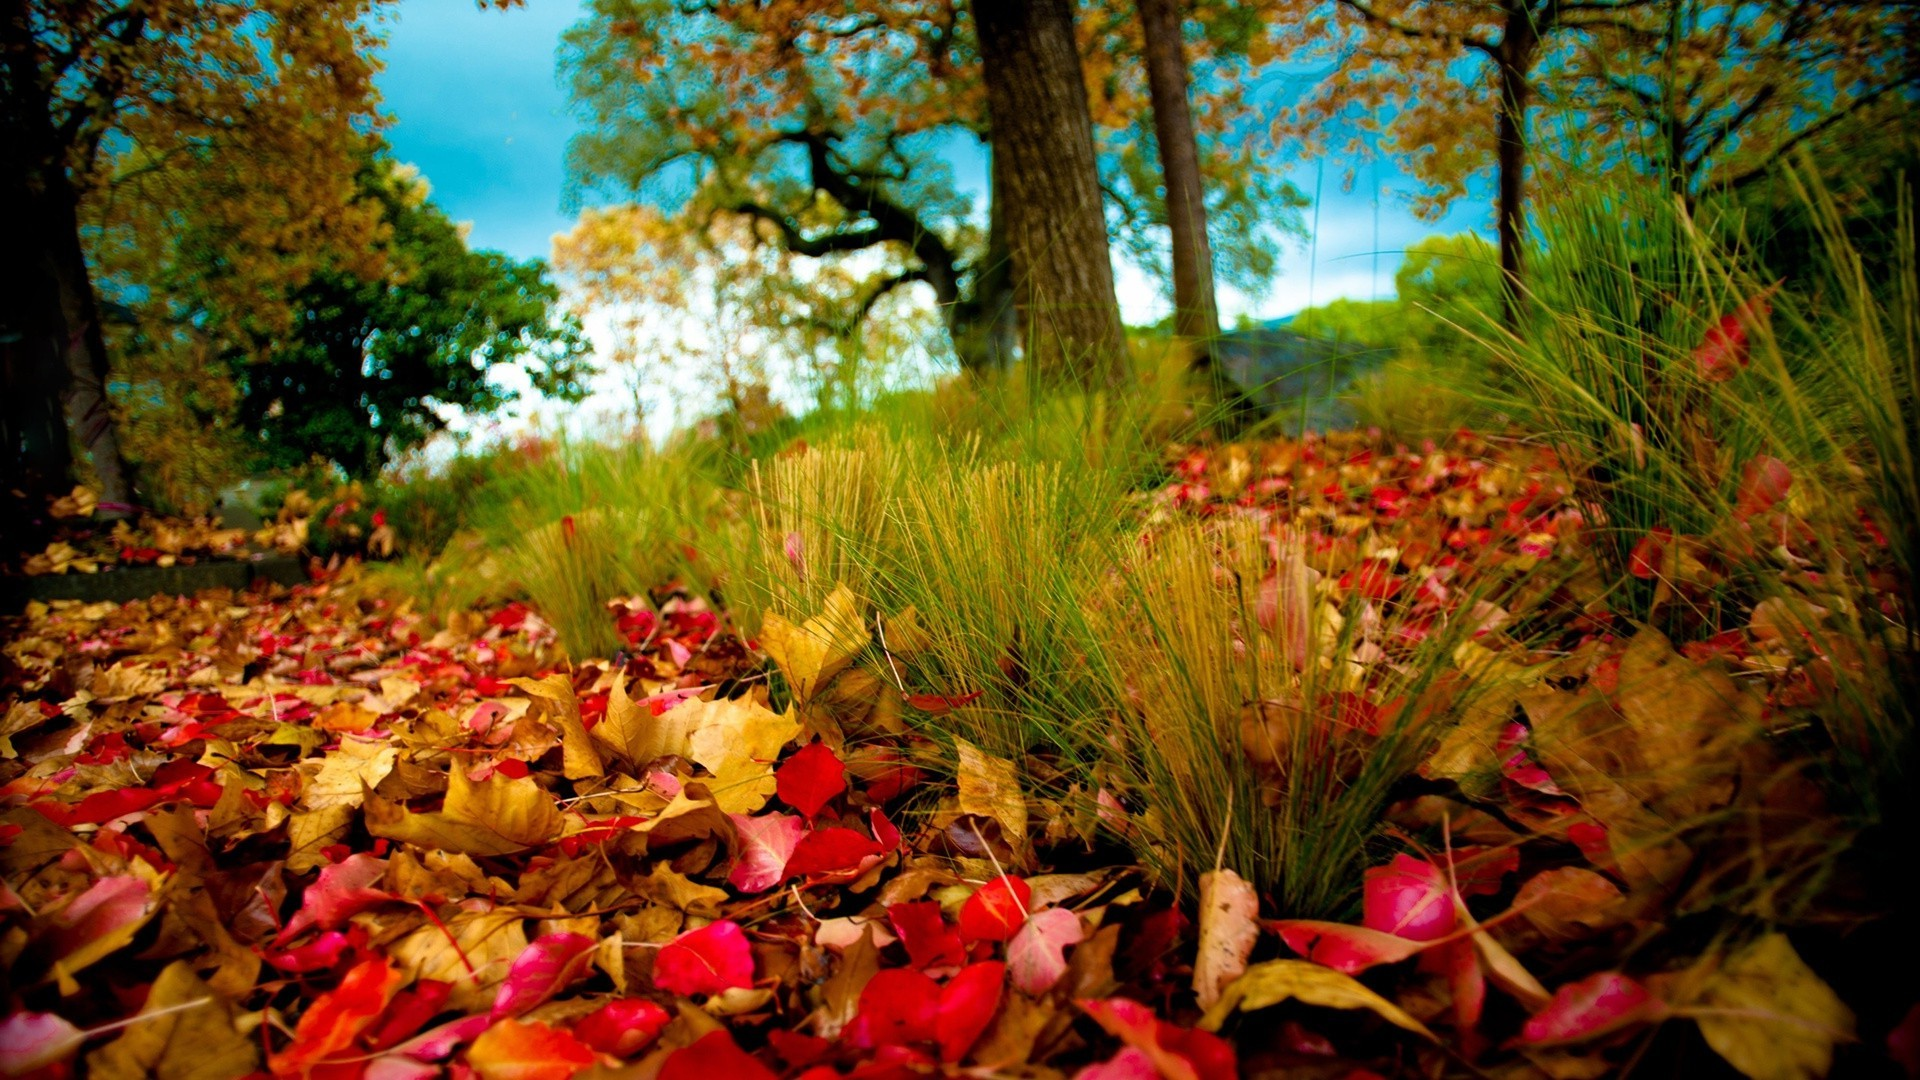 leaves fall leaf tree nature park maple outdoors wood season landscape color garden flora flower